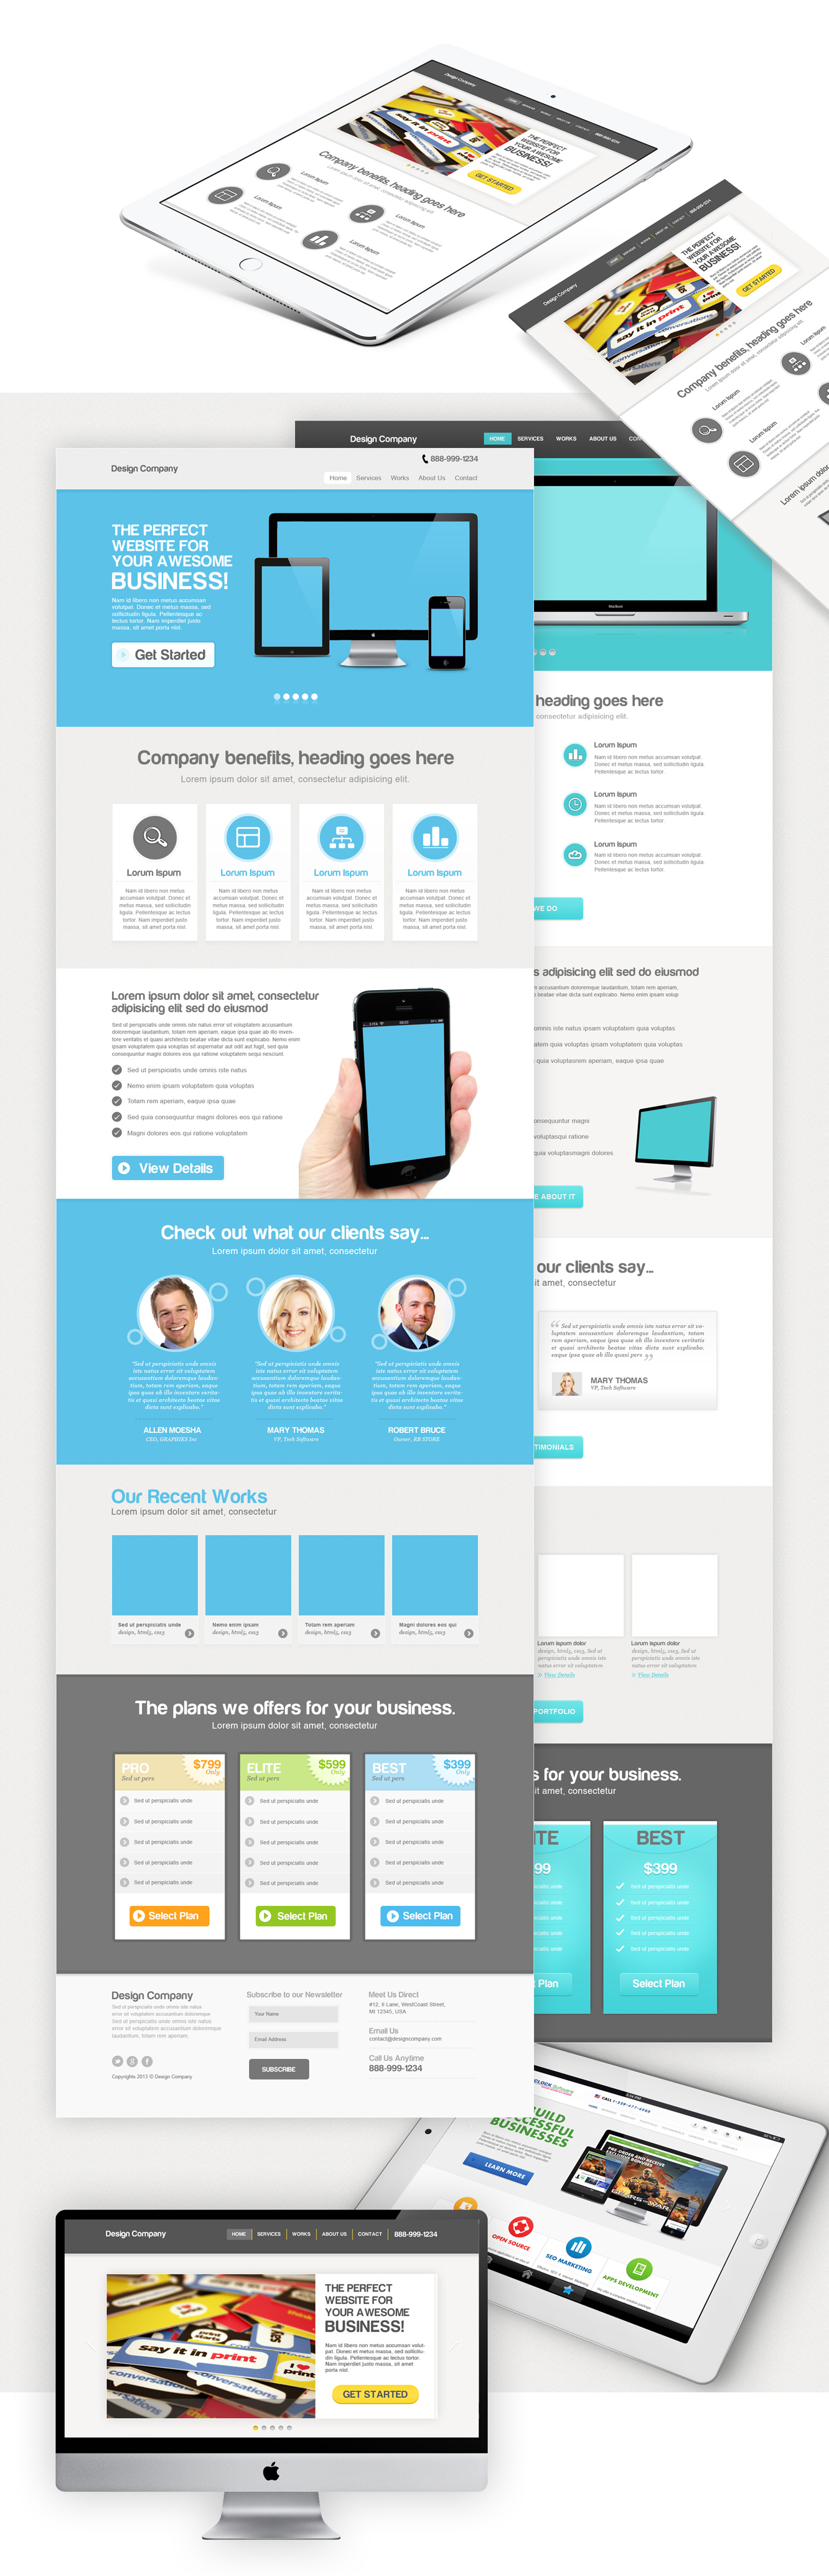 Website/Mobile Responsive PSD Designs